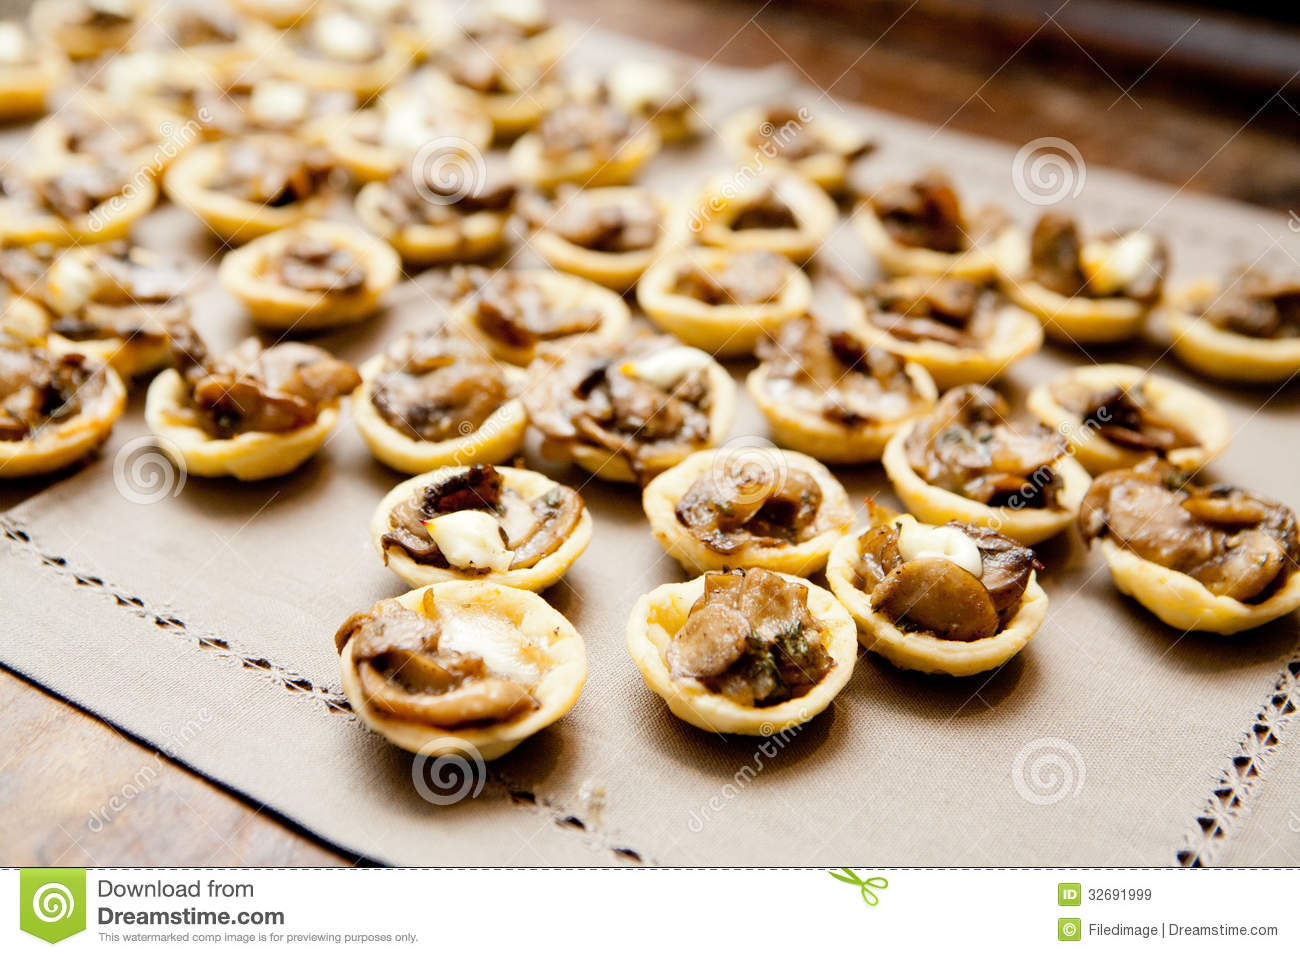 Mushroom canape royalty free stock images image 32691999 for Canape examples